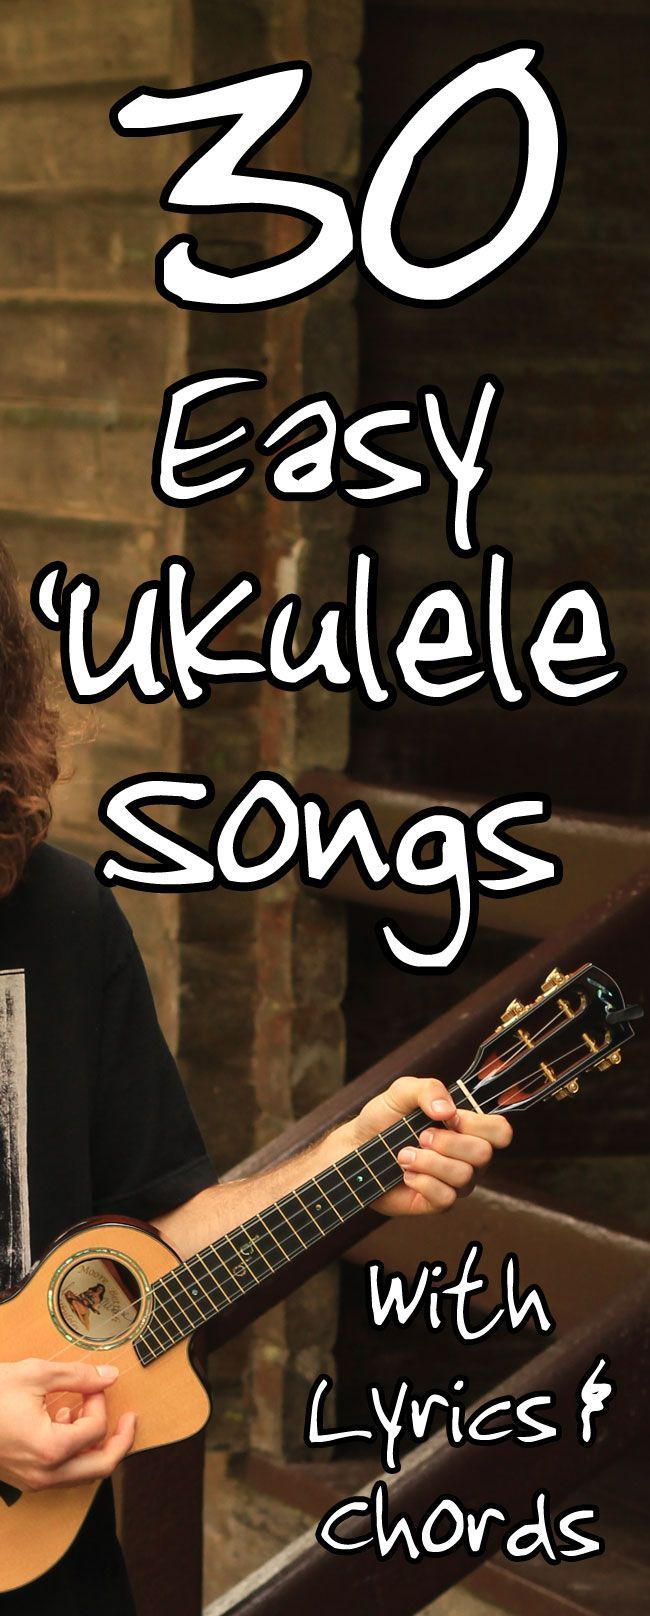 30 easy ukulele songs for beginners 3 or 4 chord songs with 30 easy ukulele songs for beginners 3 or 4 chord songs with lyrics ukulele love pinterest ukulele songs songs and 30th hexwebz Images